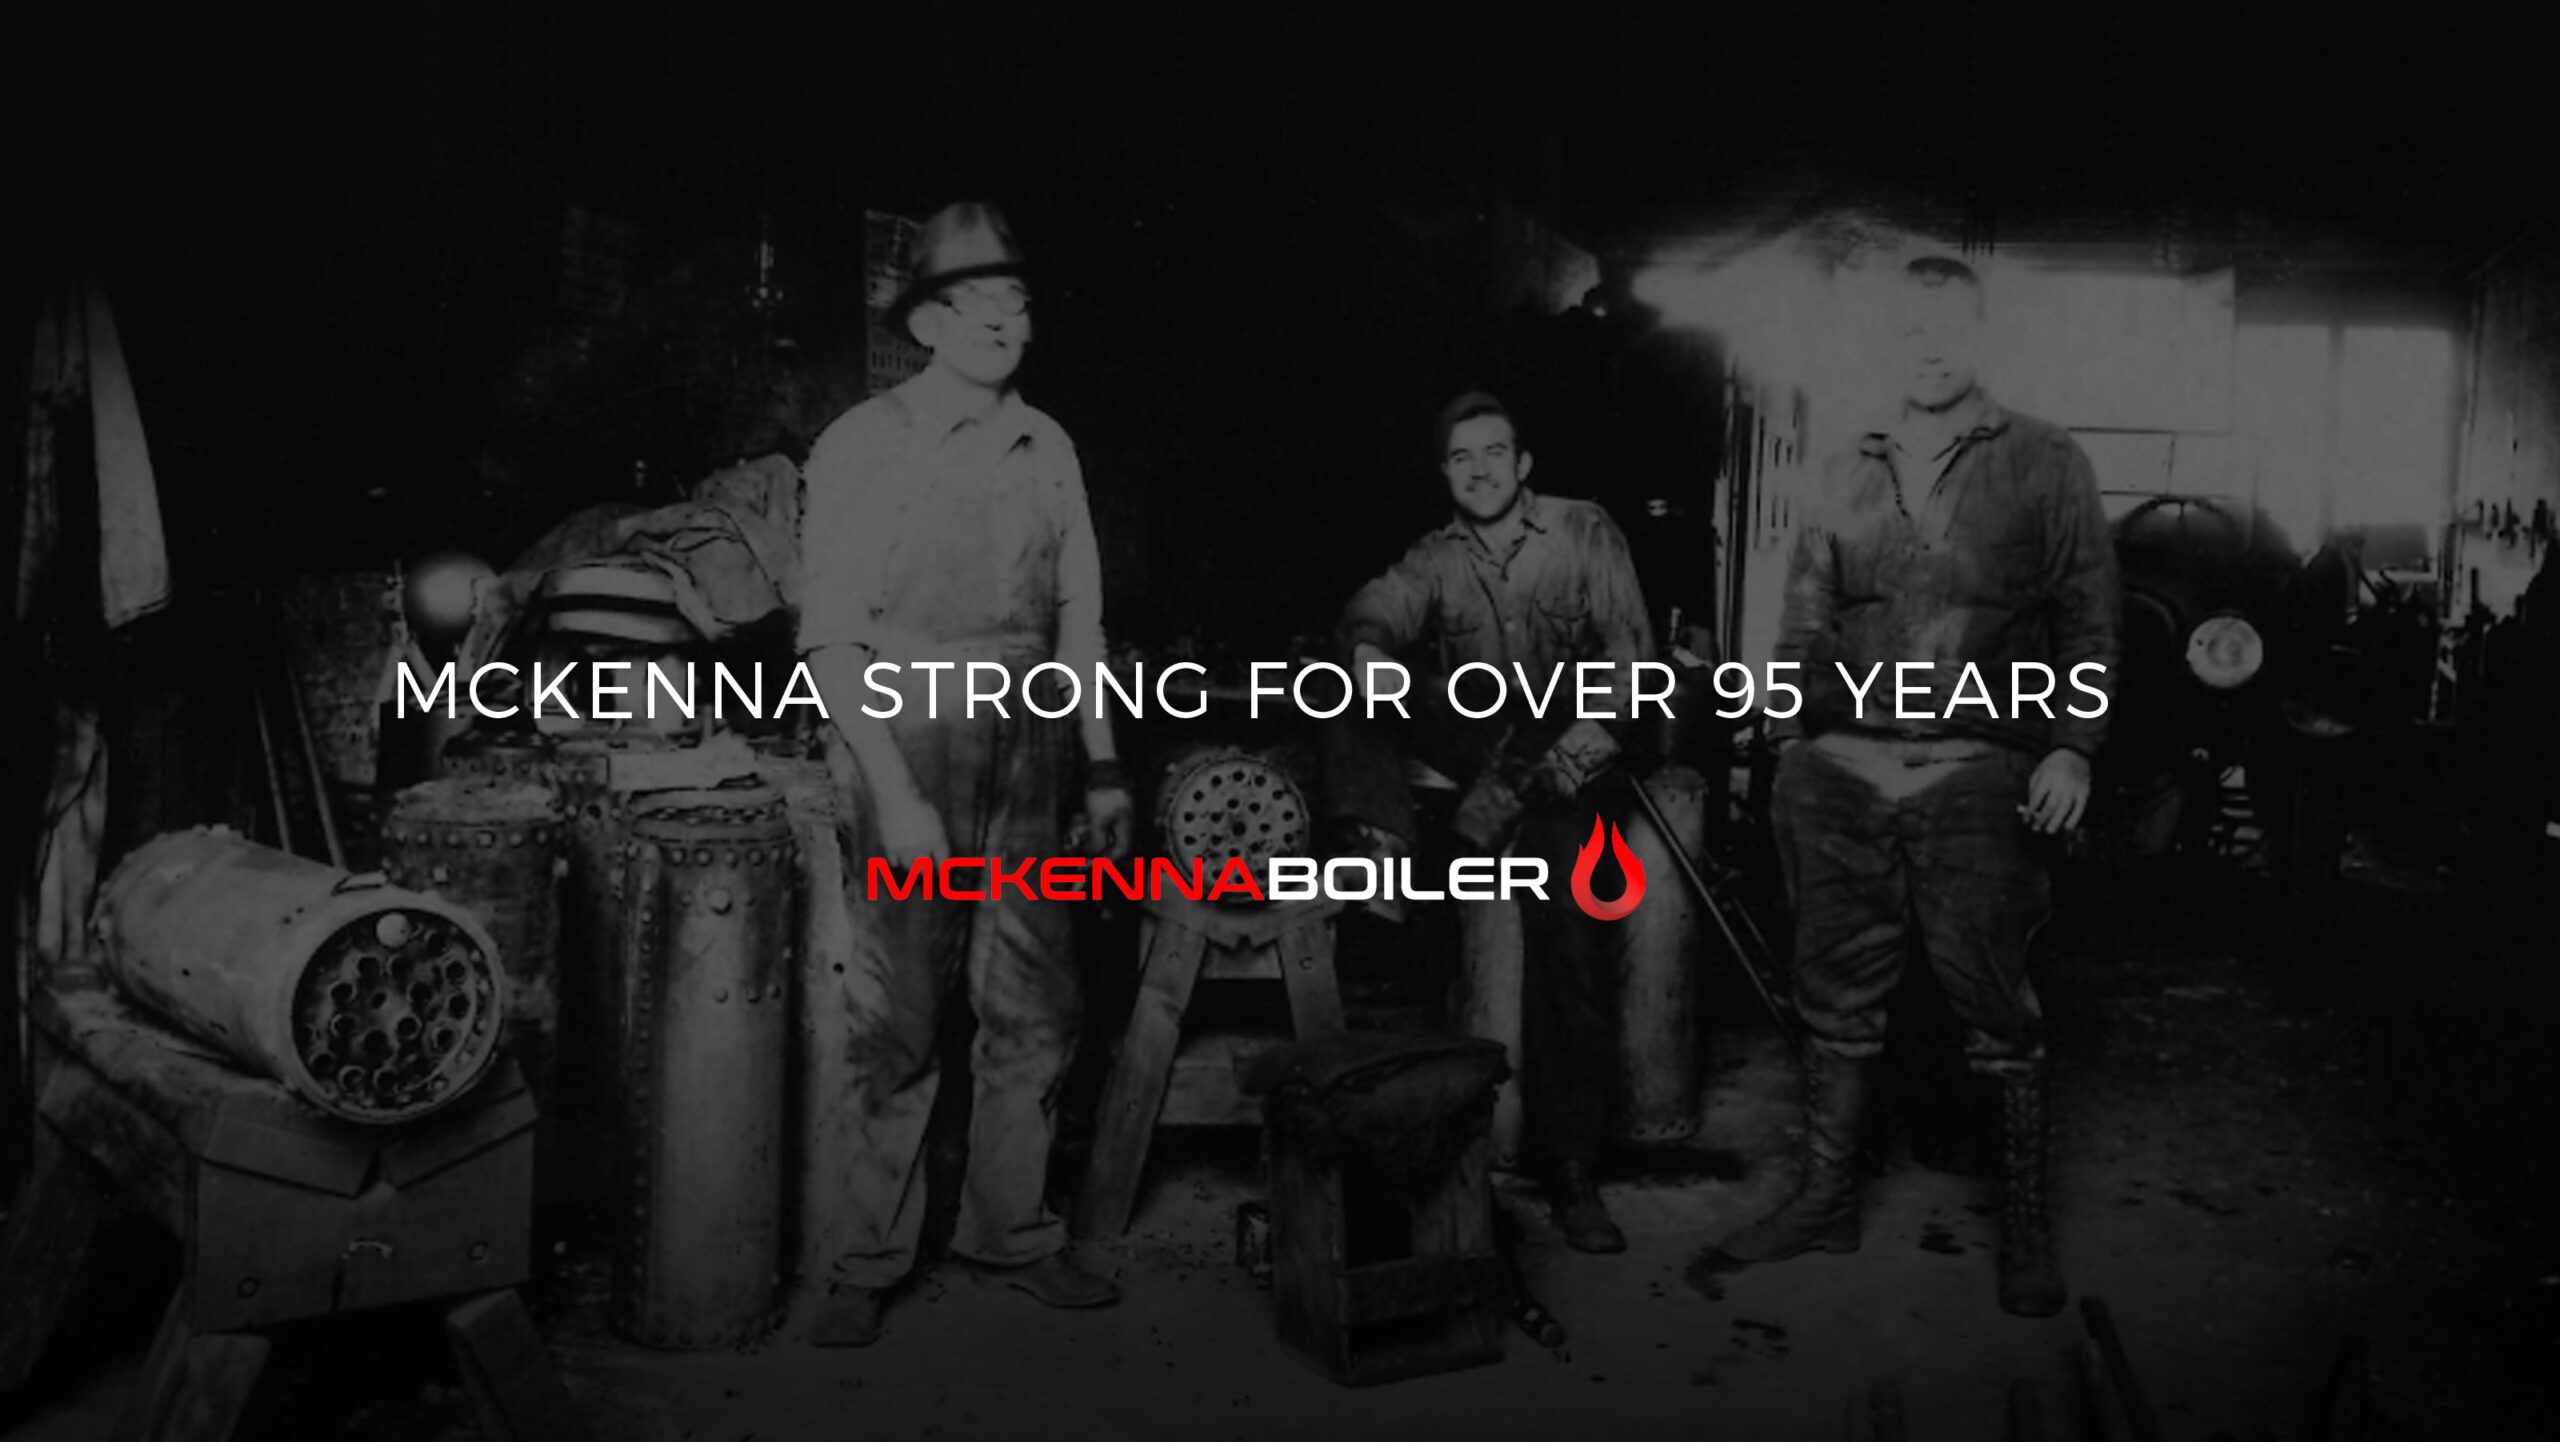 McKenna Strong for over 95 Years